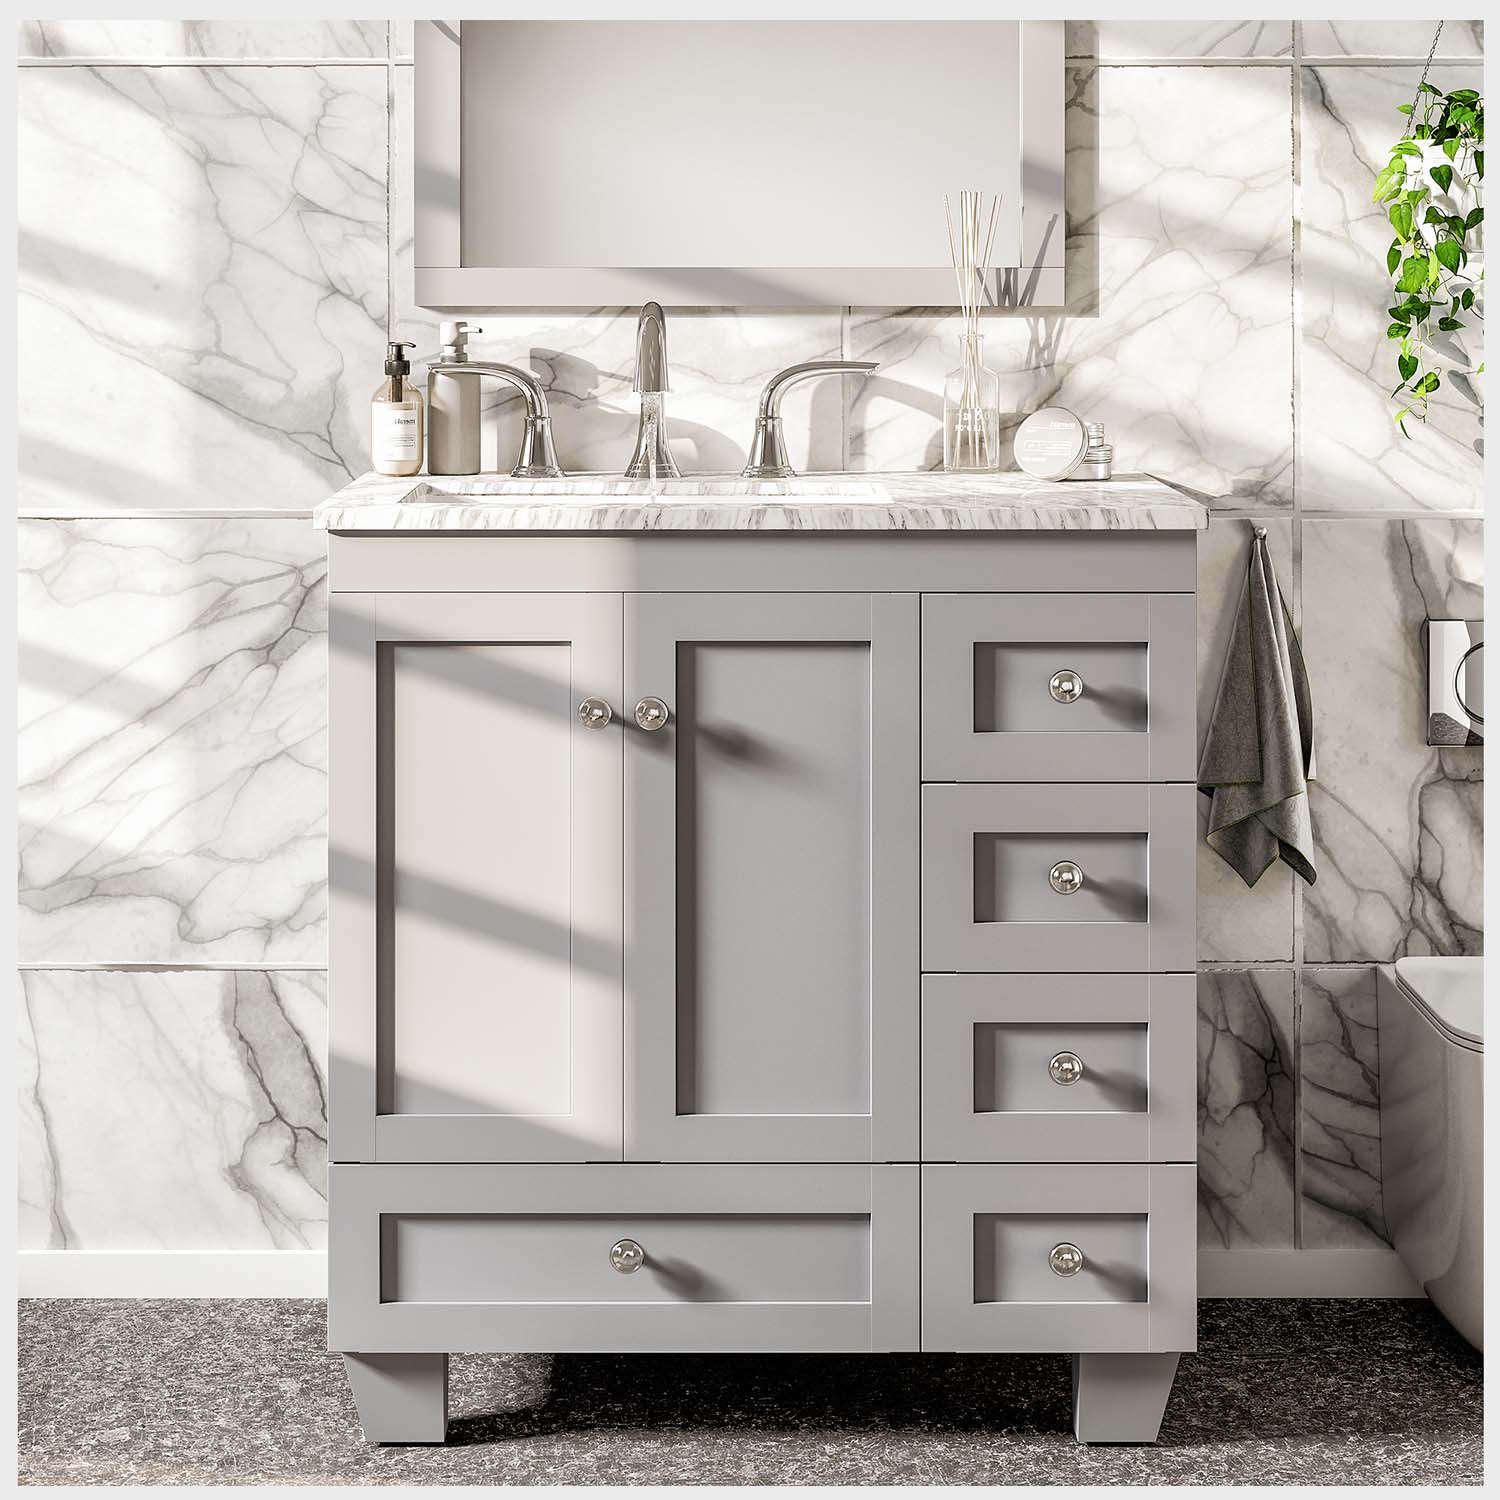 "EVVN69 30GR A Main - Eviva Acclaim C. 30"" Transitional Grey Bathroom Vanity with white carrera marble counter-top"